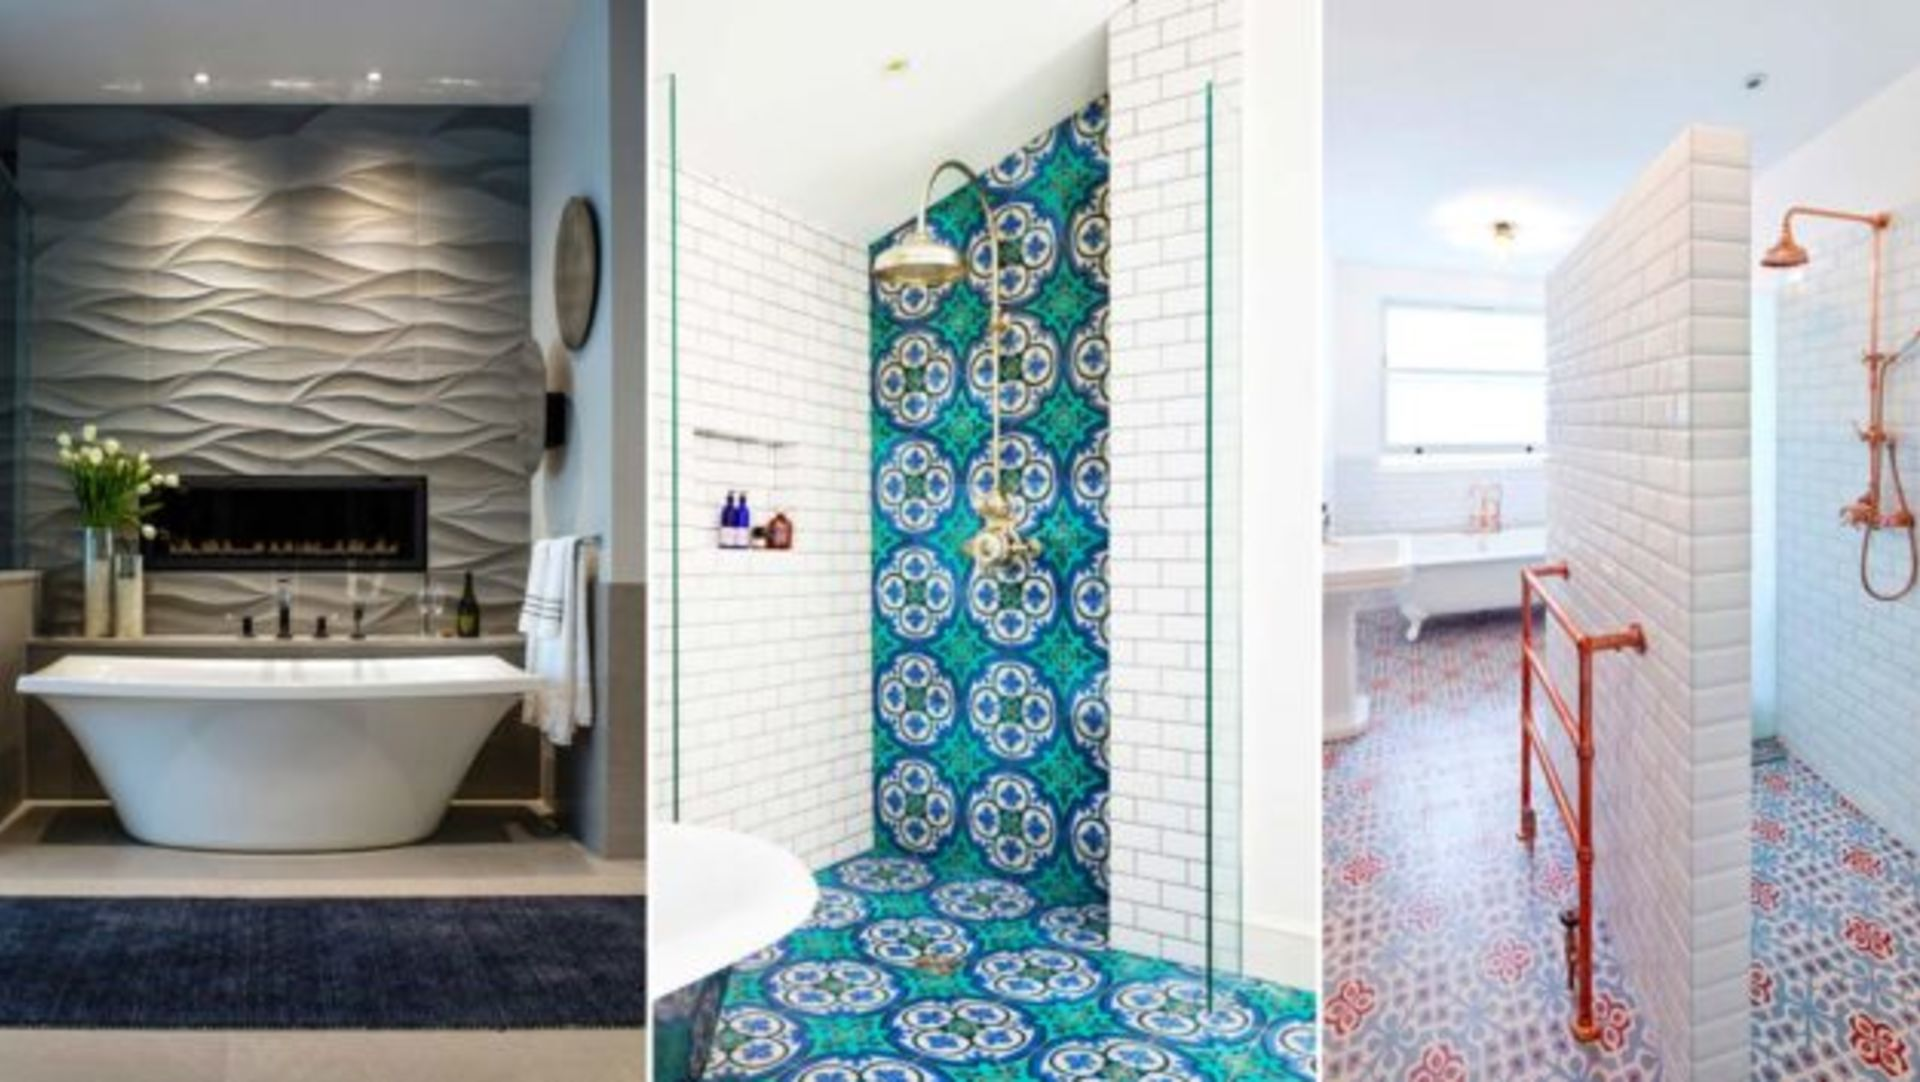 Get This Look: 9 Beautiful Bathroom Design Trends We're Swooning Over